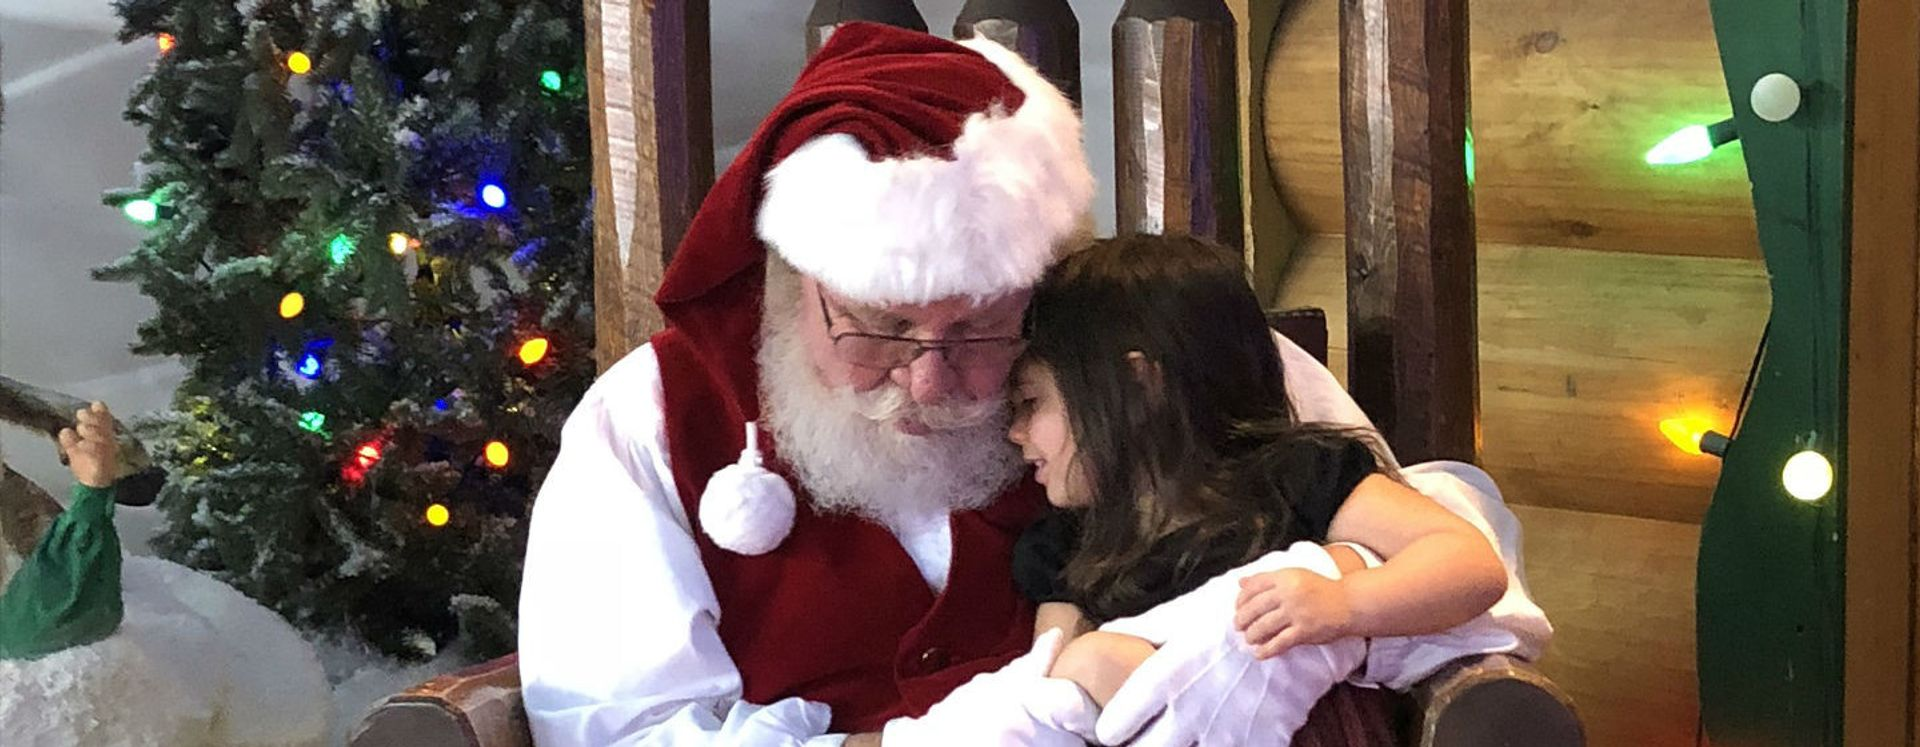 Santa Claus holding girl seated on his laps